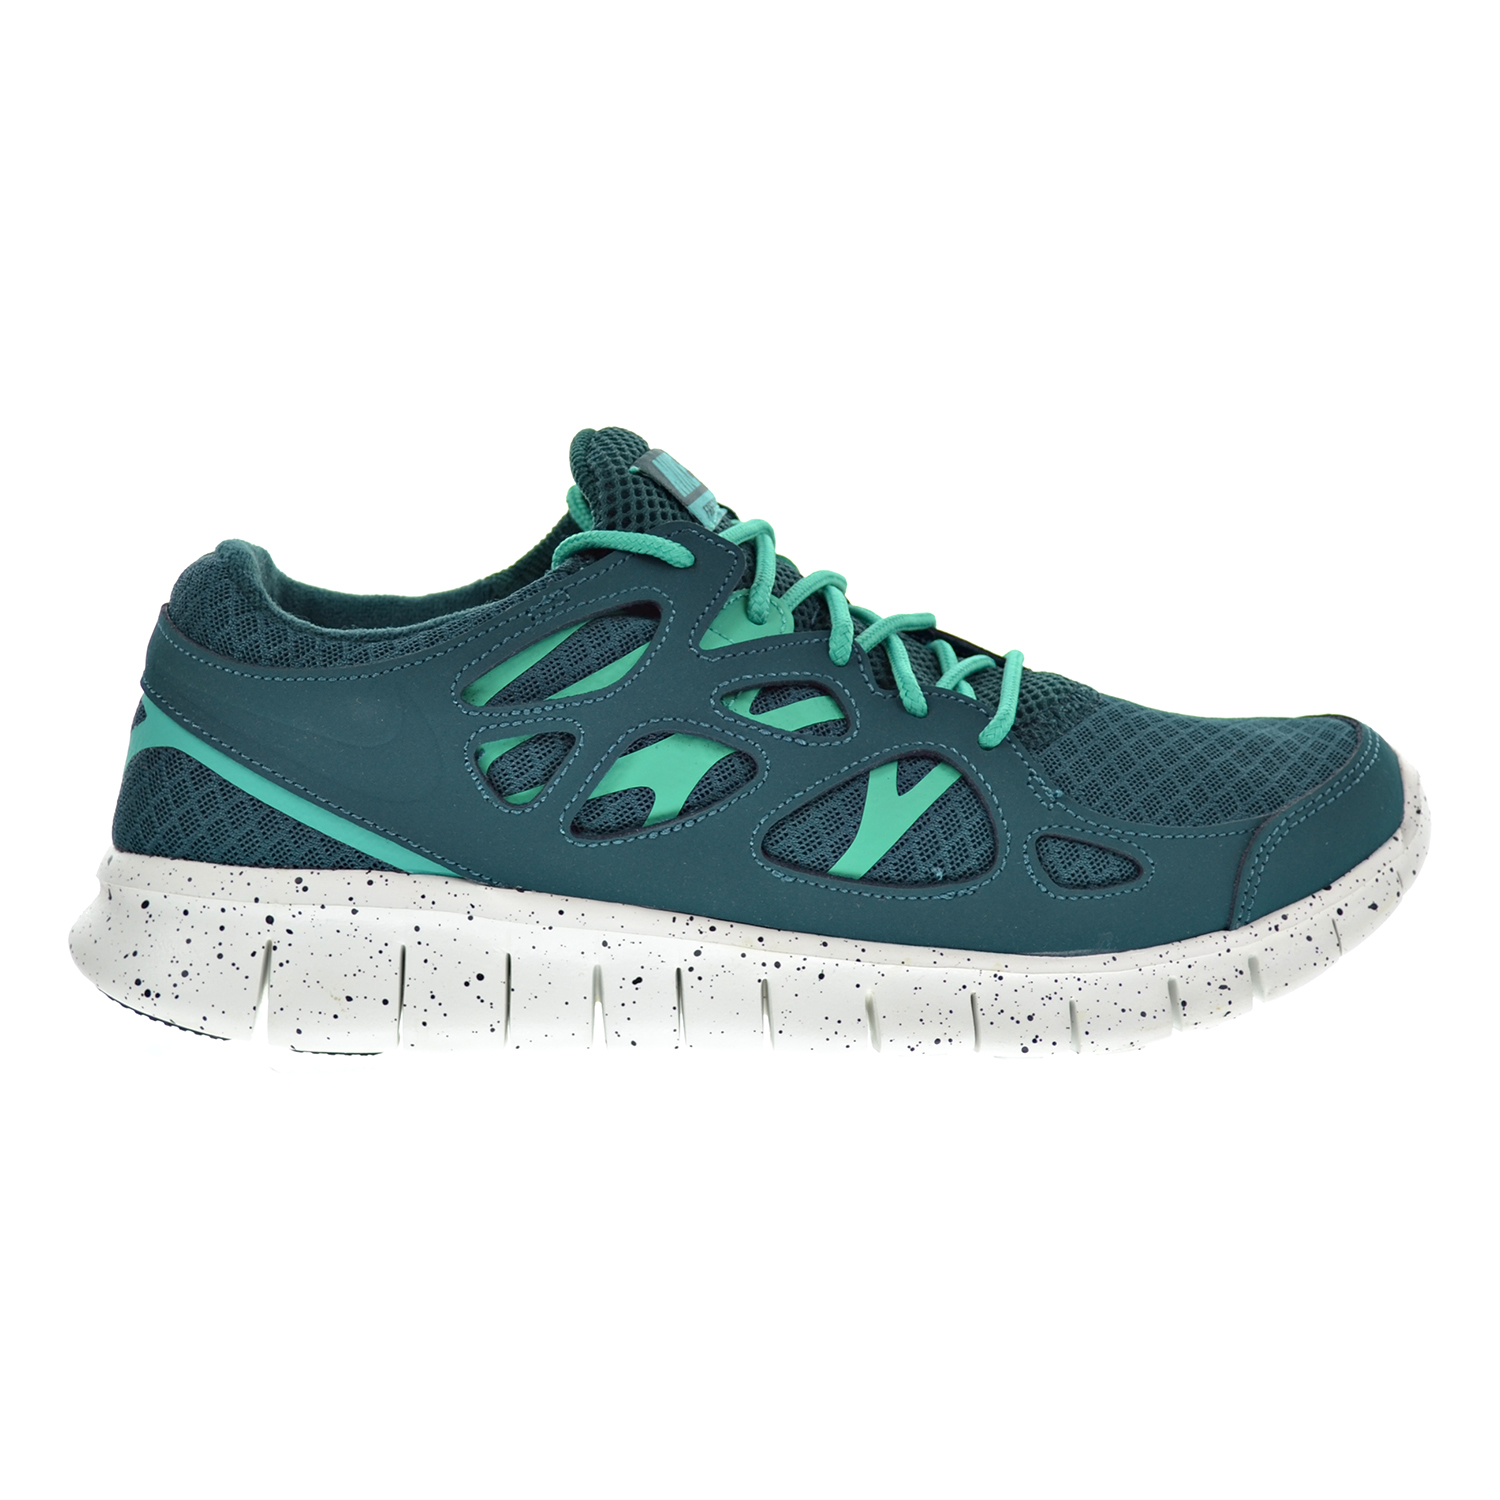 Men's - Nike Free Run+ 2 EXT Dark Atomic Teal / Dark Atomic Teal Shoes